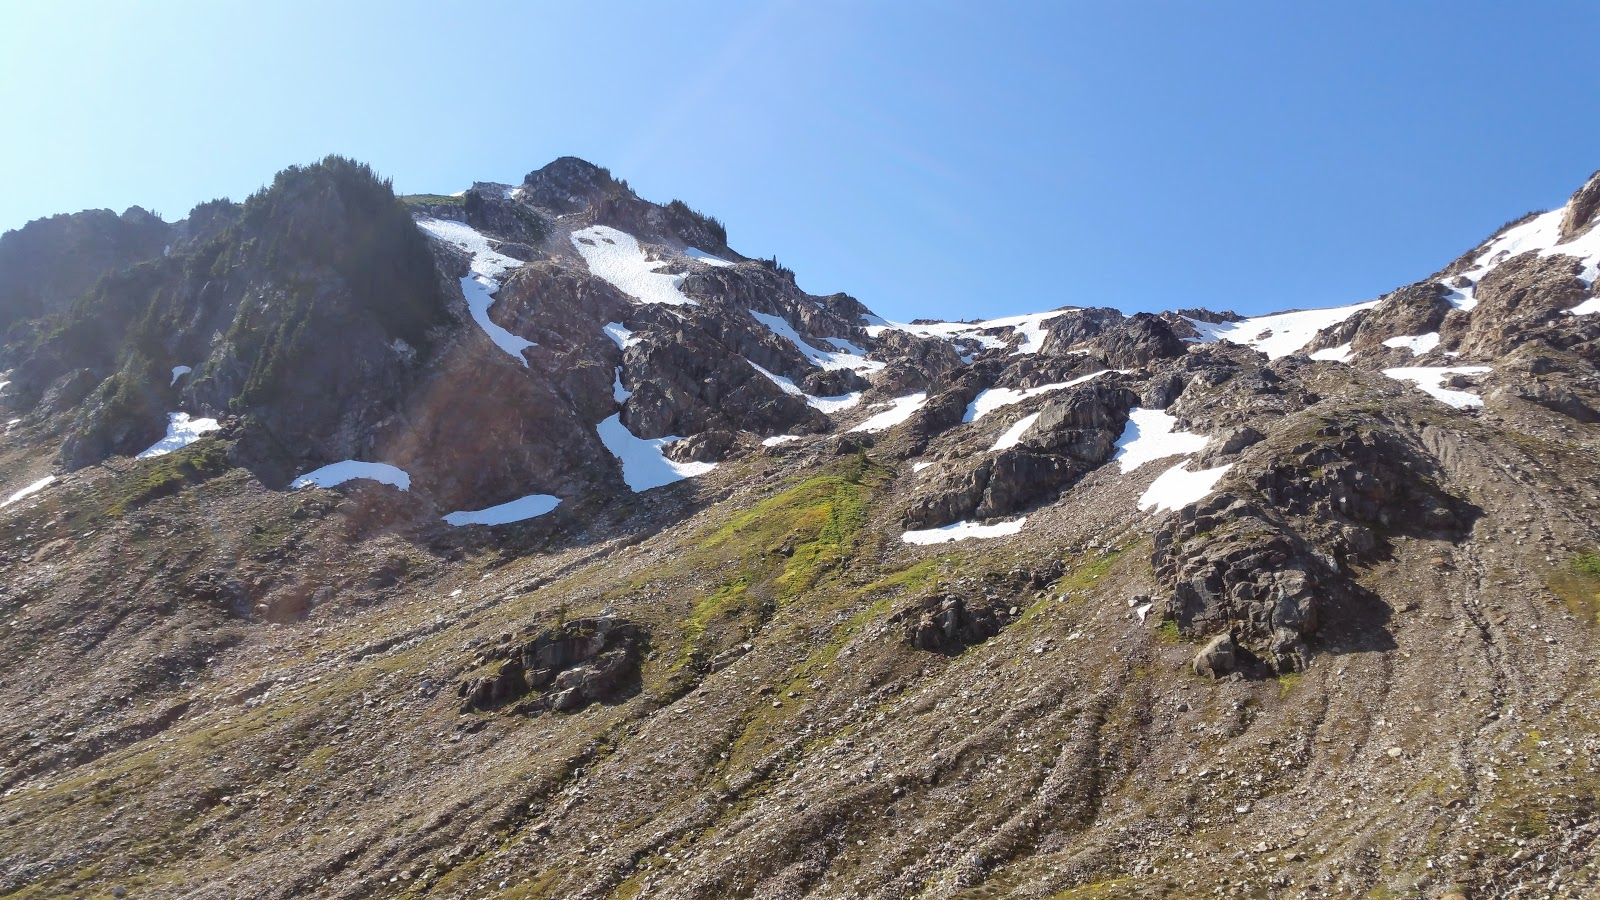 The Dragons Lair, right on the Pacific Crest Trail.